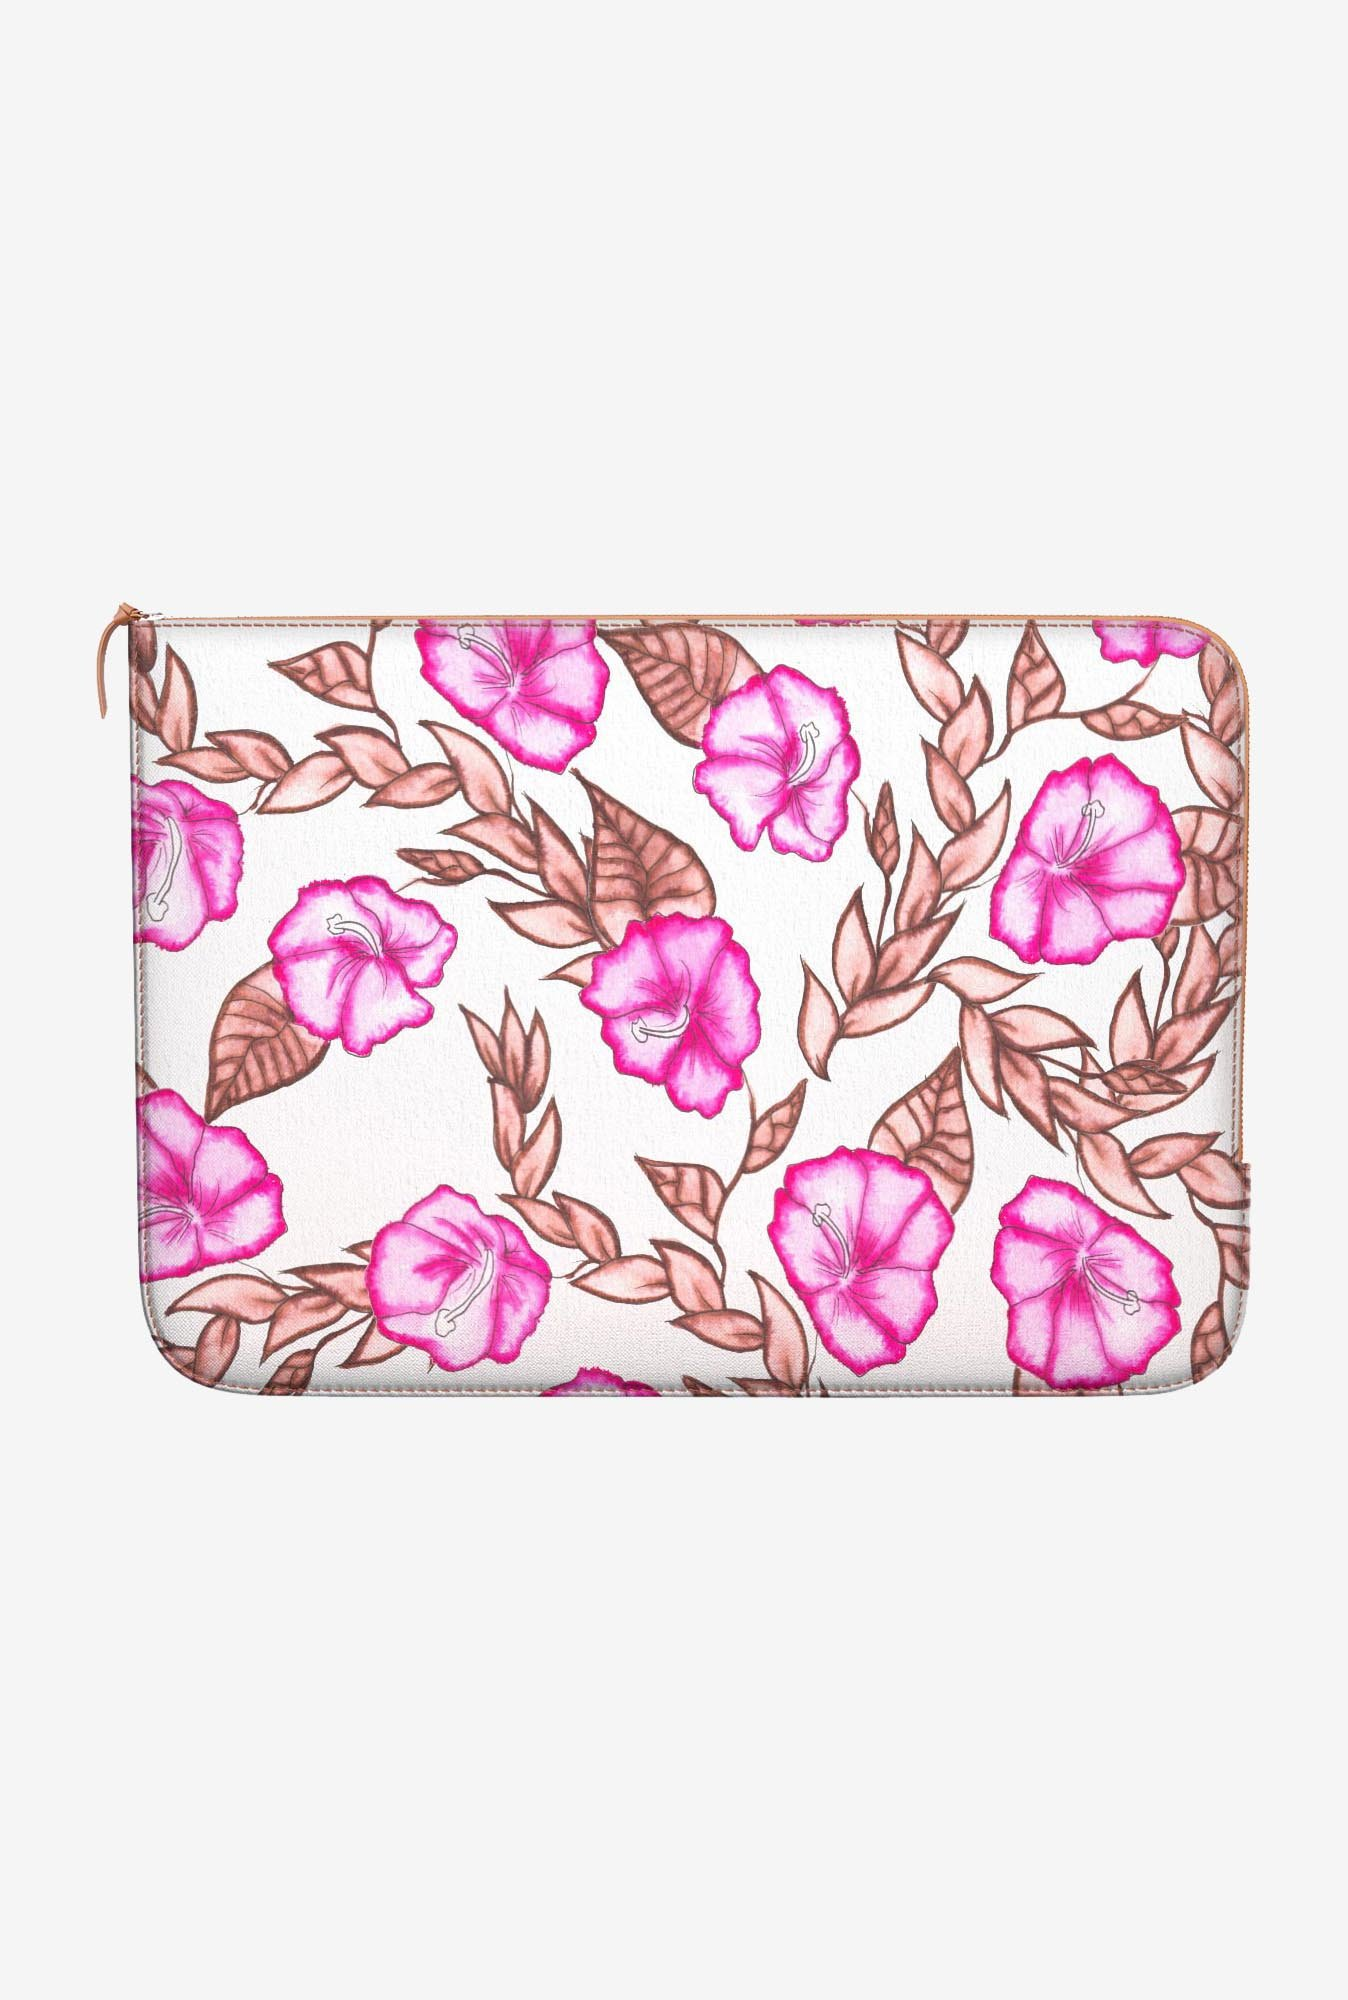 DailyObjects Painted Floral MacBook 12 Zippered Sleeve